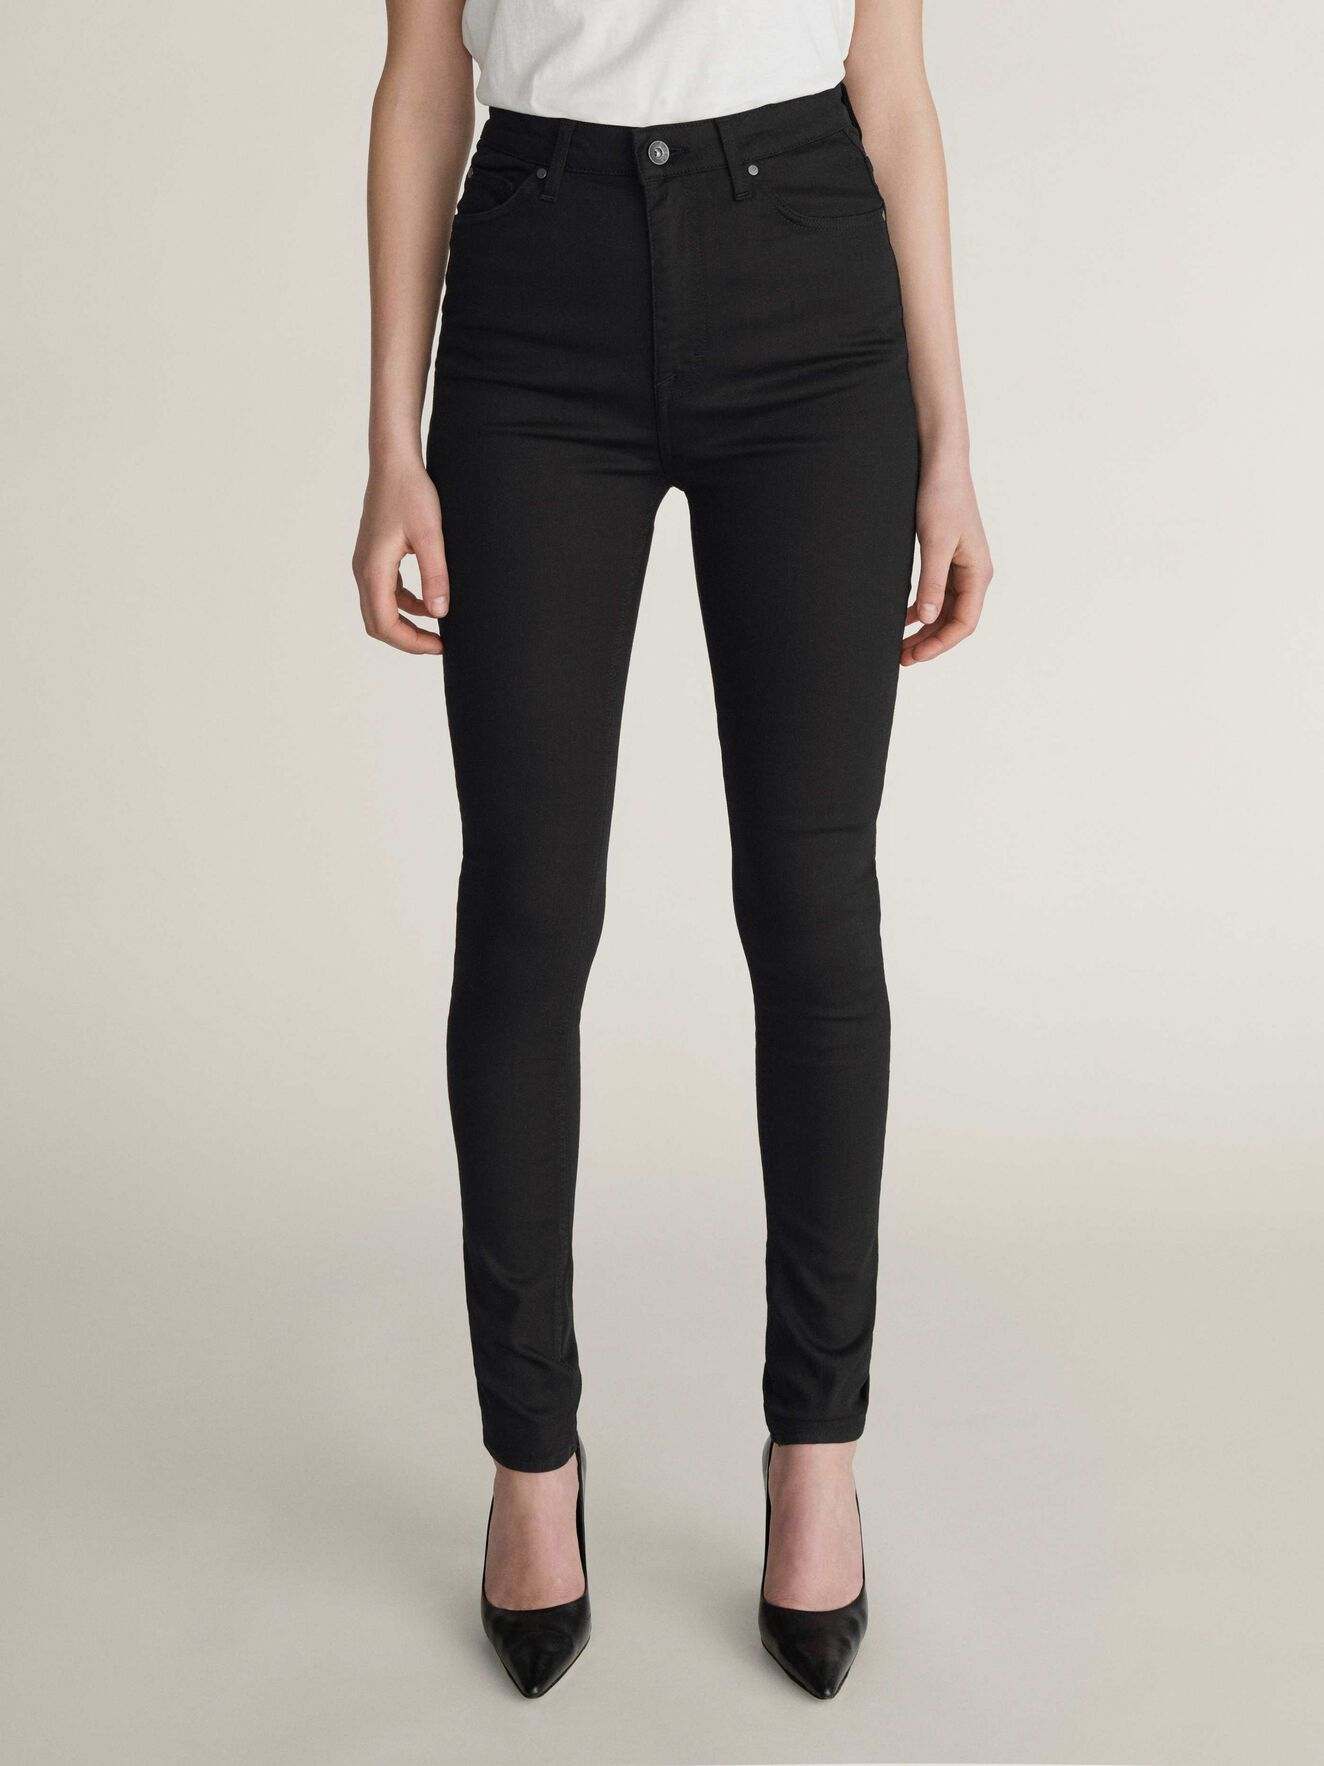 Sandie Jeans in Black from Tiger of Sweden